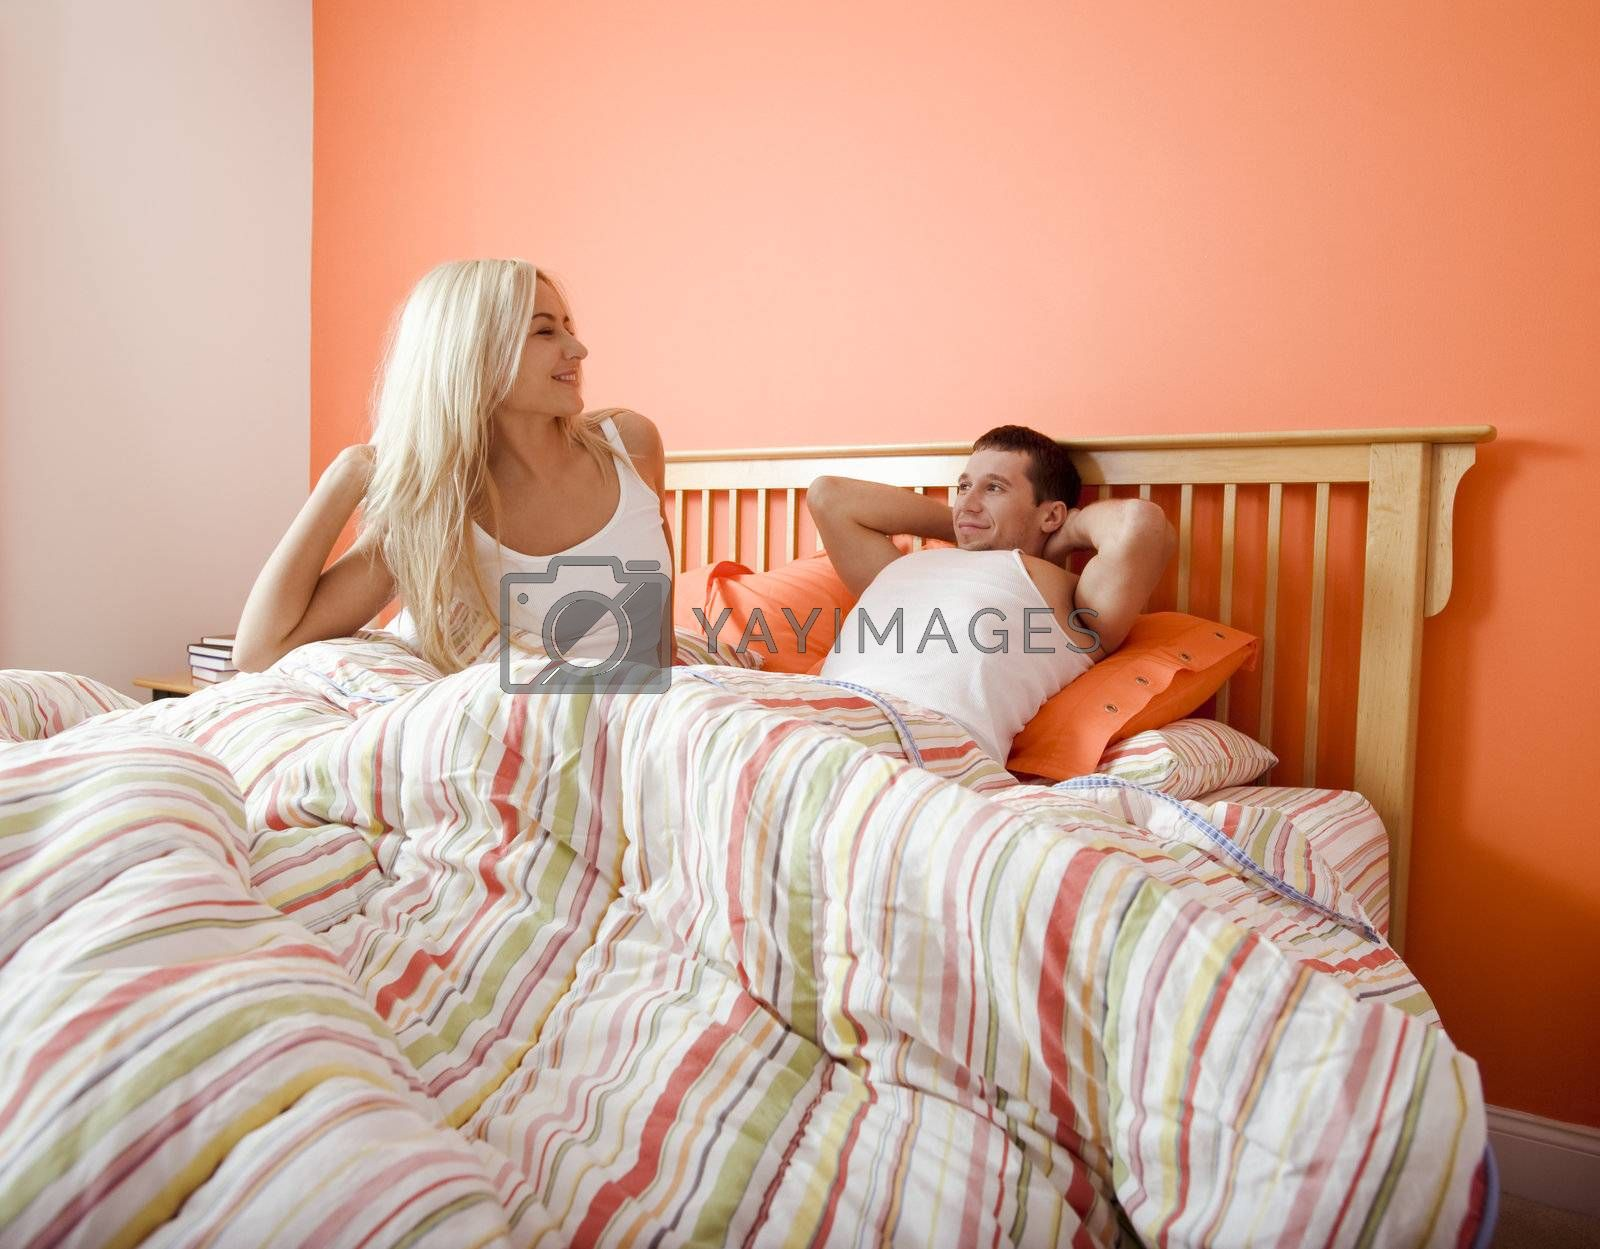 Young couple wake up in bed under a striped bedspread. Horizontal shot.